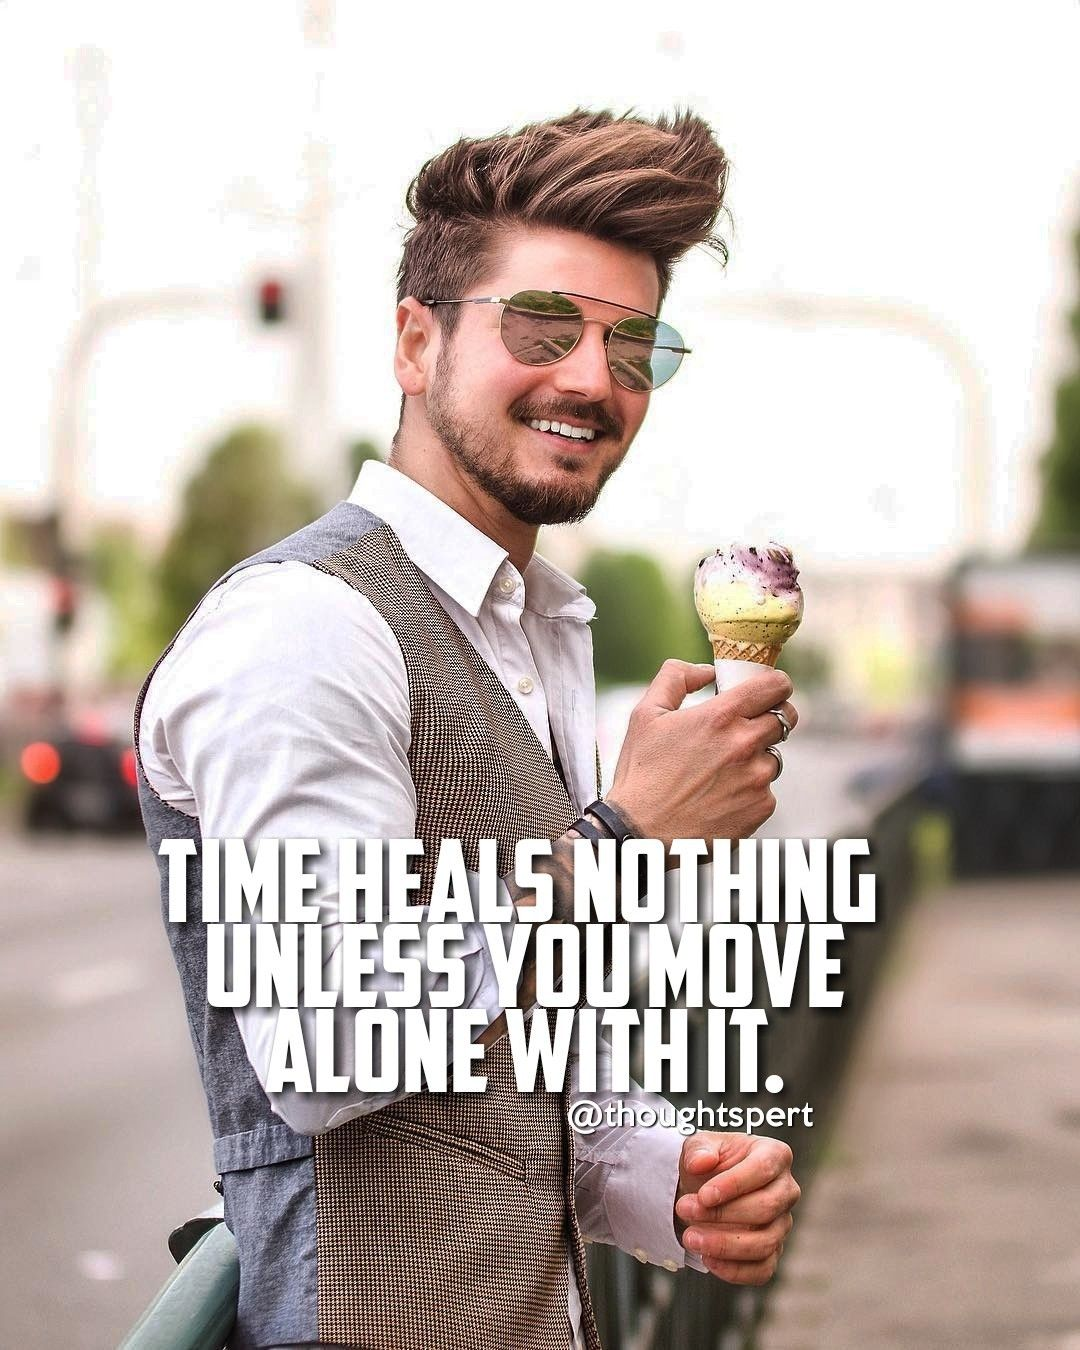 Mens style quotes hairstyles follow thoughtspert on